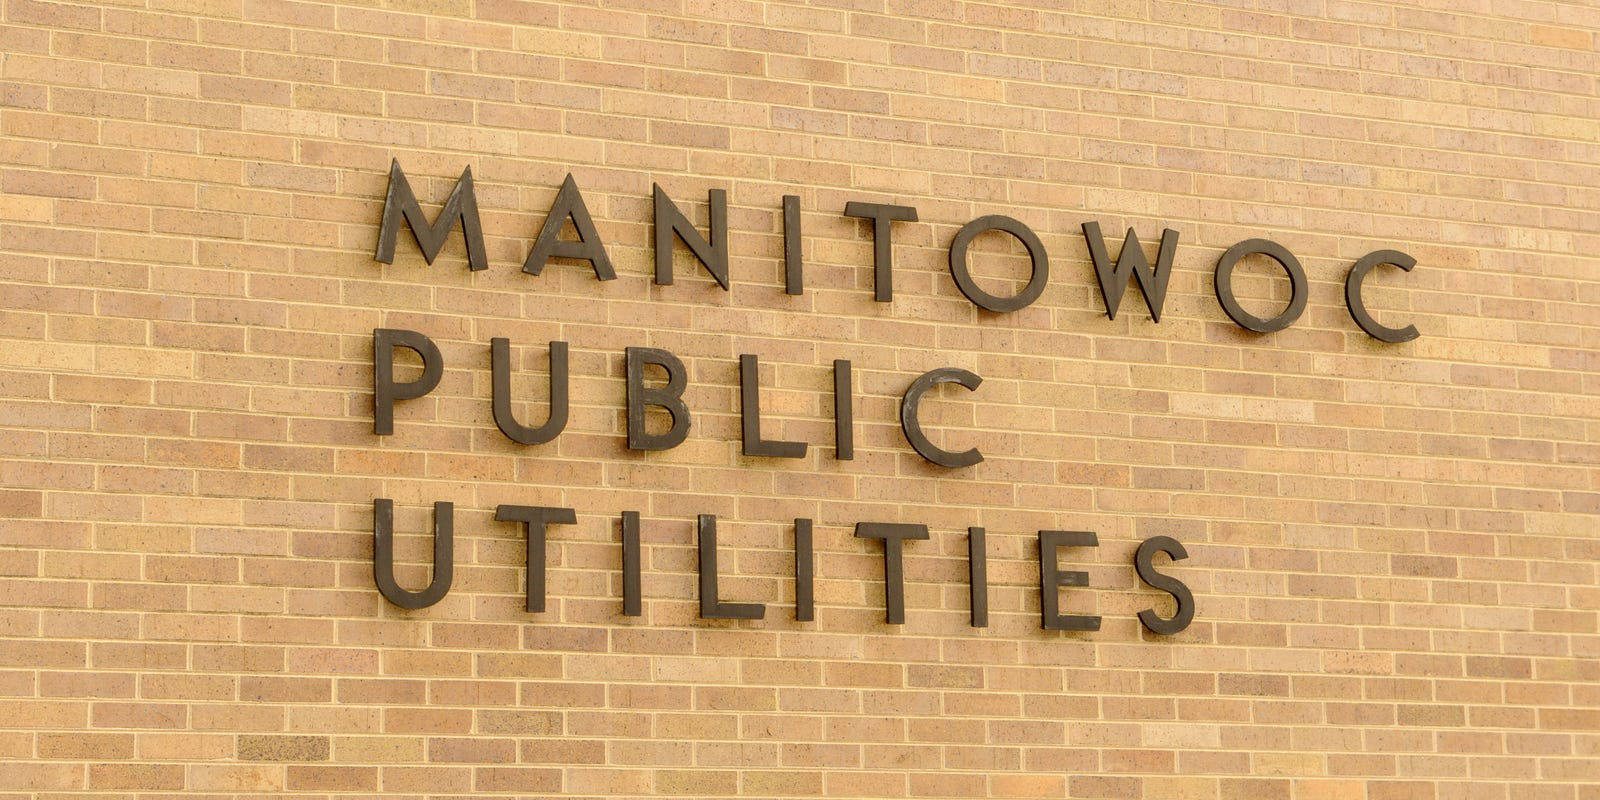 Underground cable failure causes power outage in Manitowoc